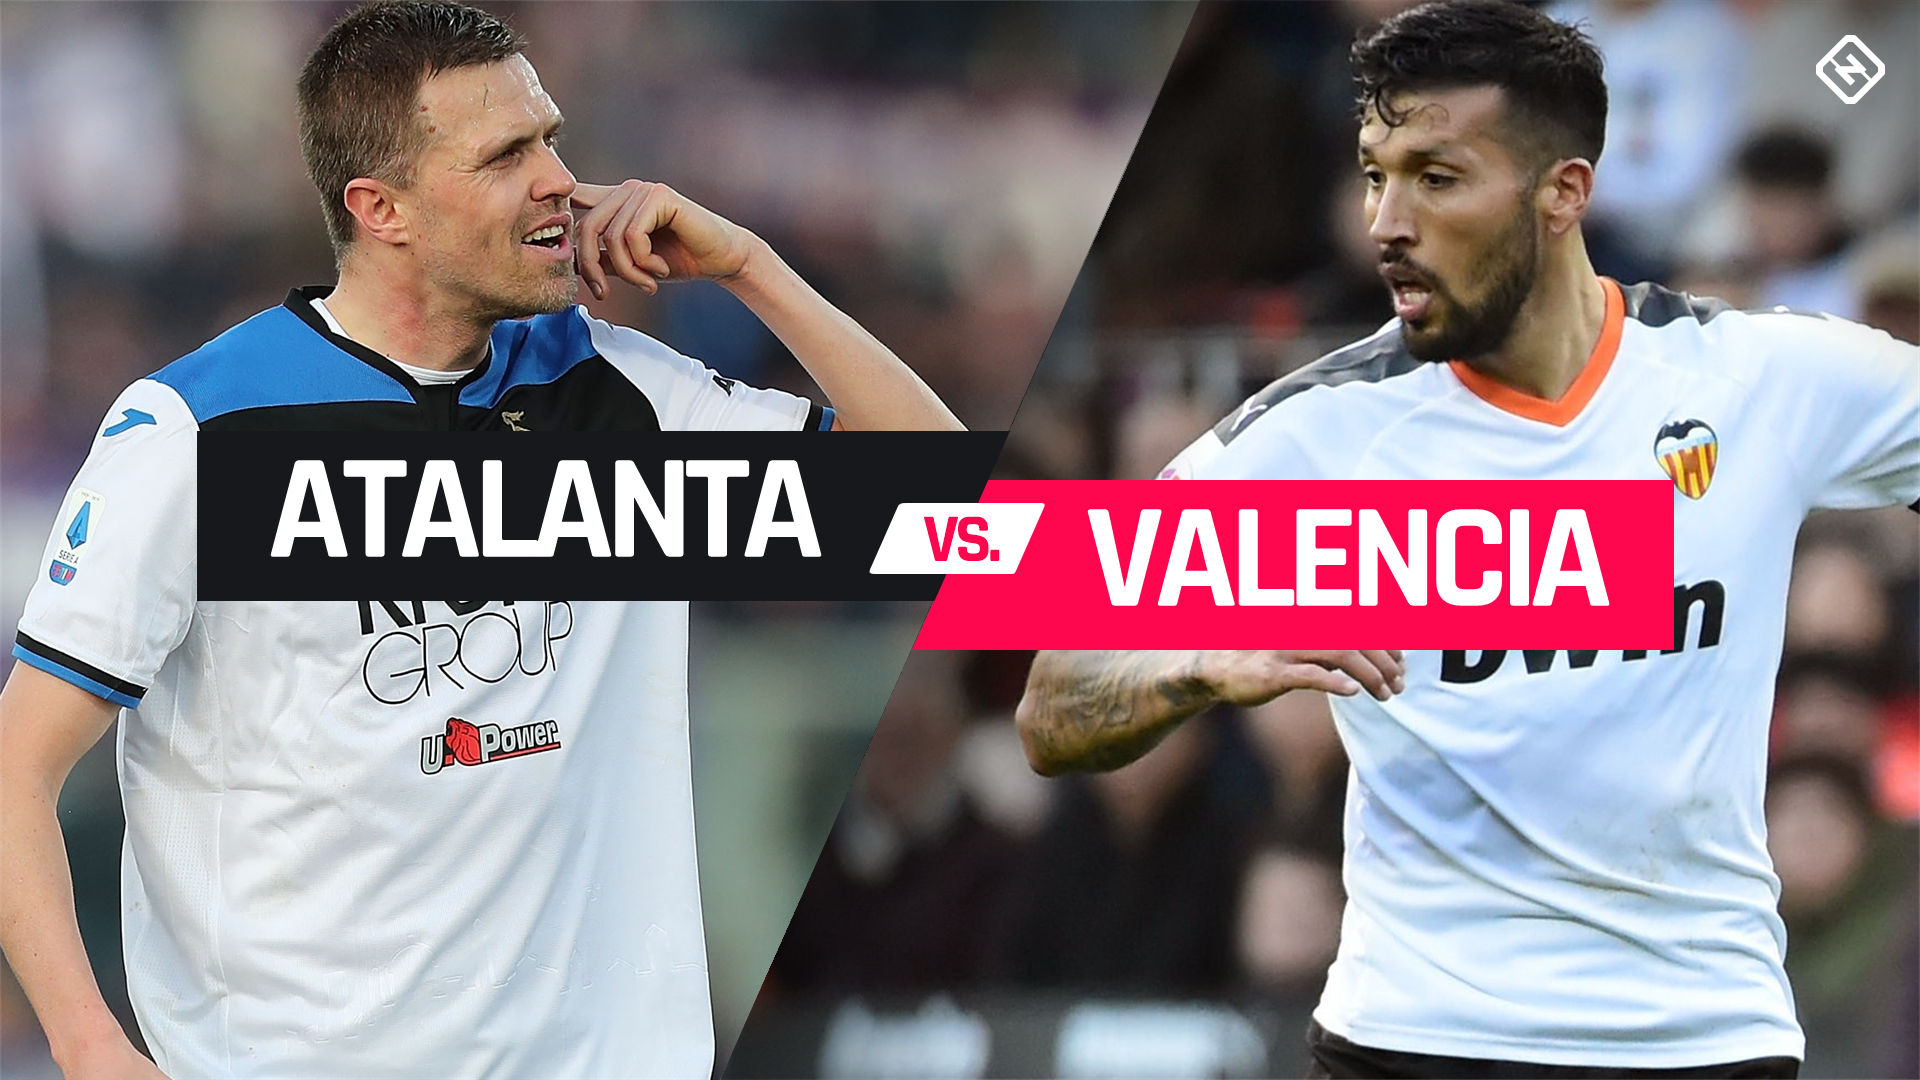 Atalanta vs. Valencia: How to watch the Champions League Round of 16 first leg in Canada